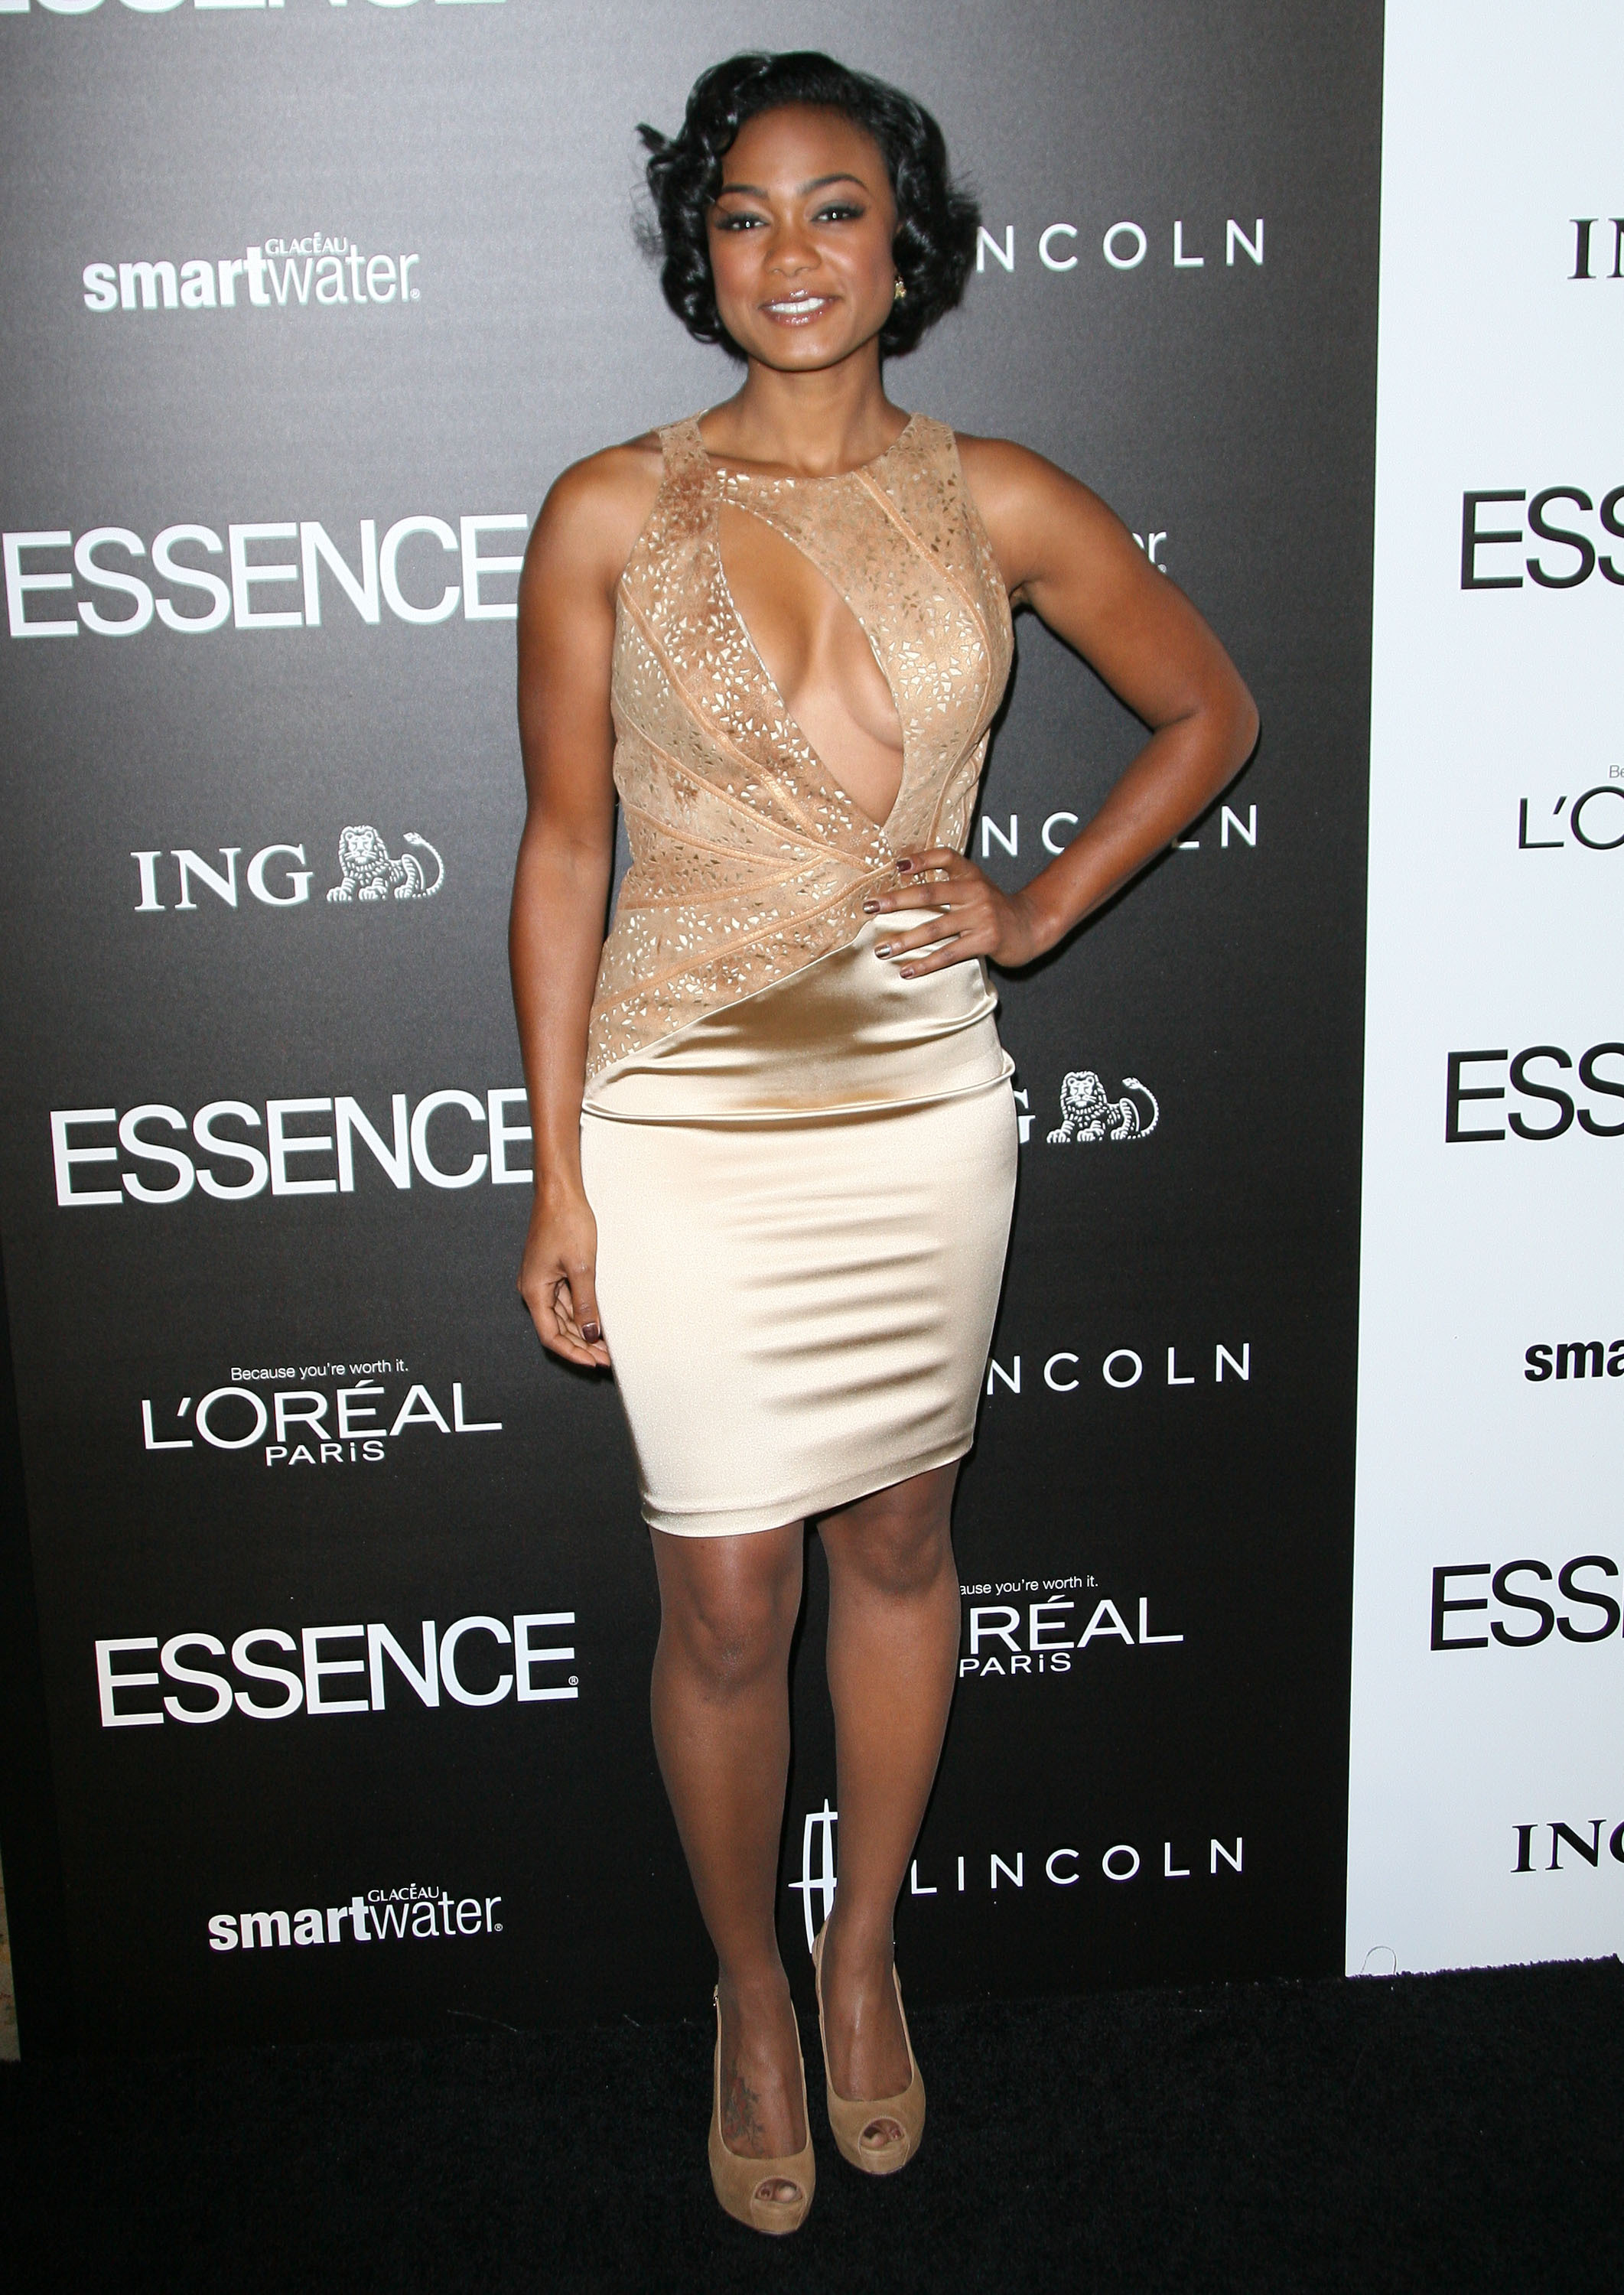 Forum on this topic: Angela Little (actress), tatyana-ali/